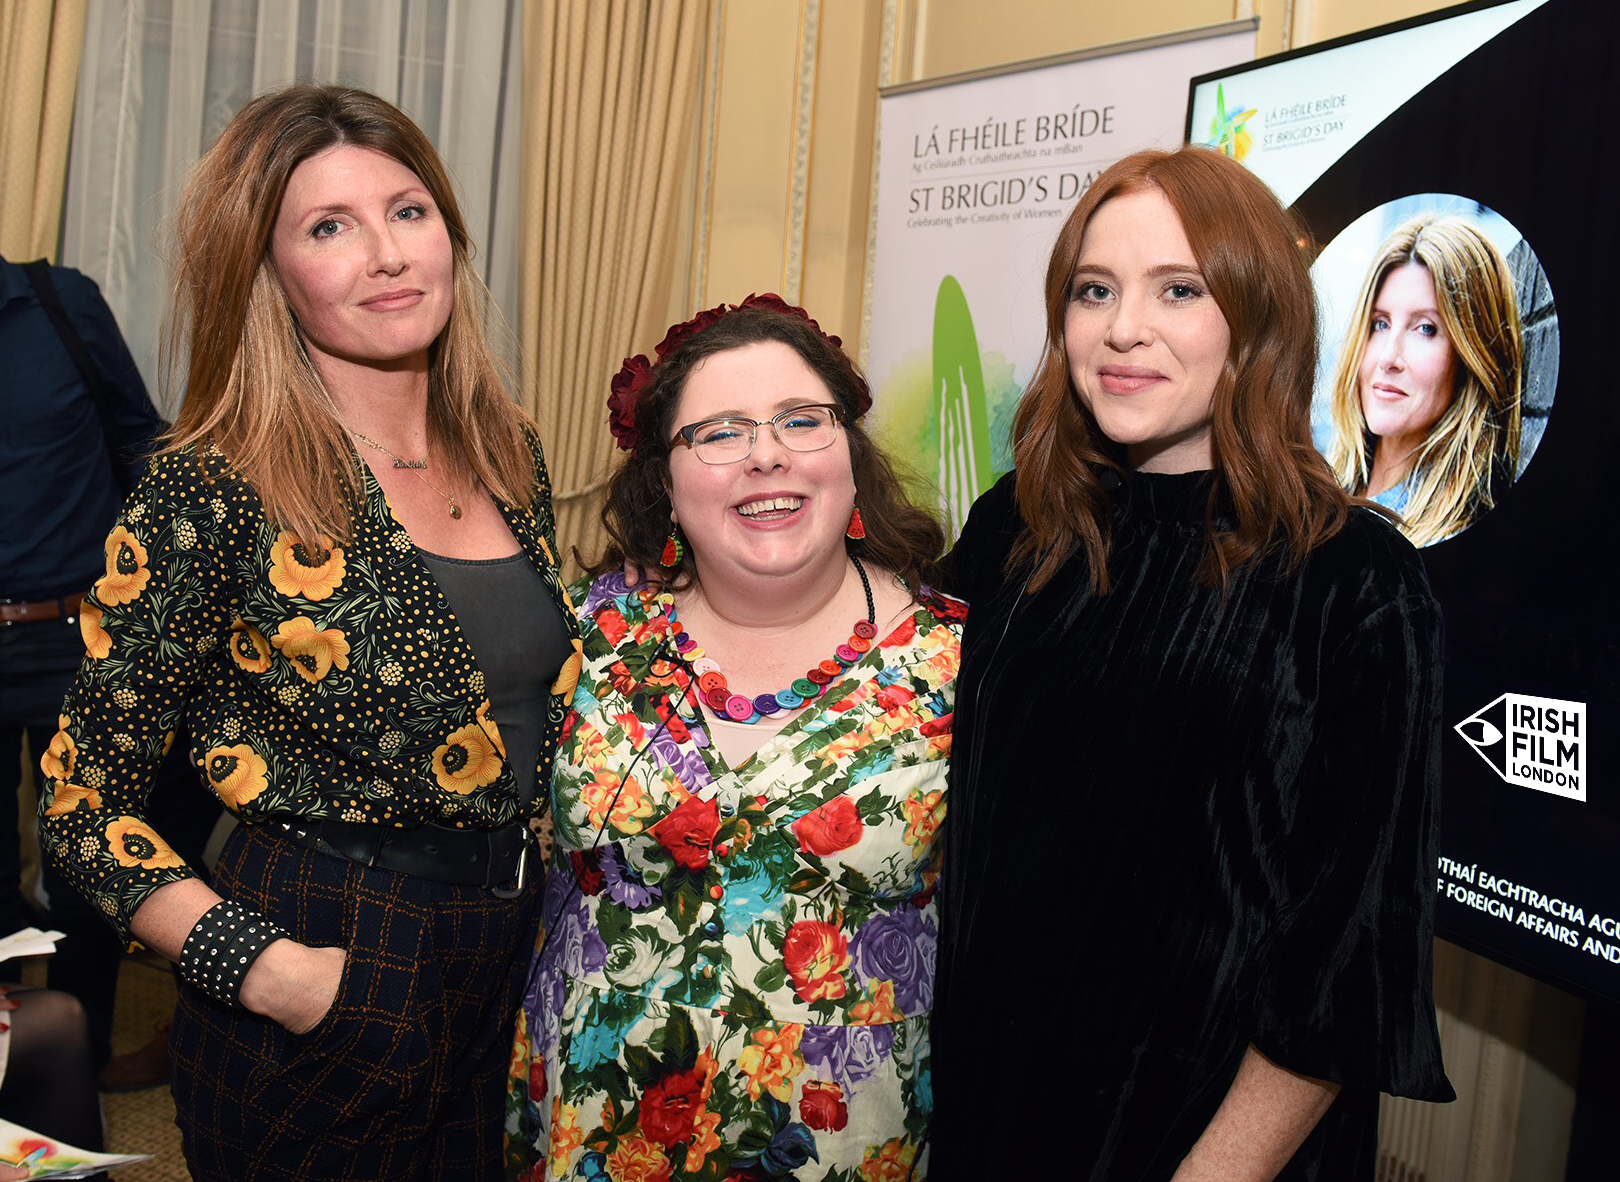 Comedy writers and actors Sharon Horgan and Alison Spittle with TV Presenter Angela Scanlon at the St Brigids Day event at the Embassy of Ireland GB, 2018.